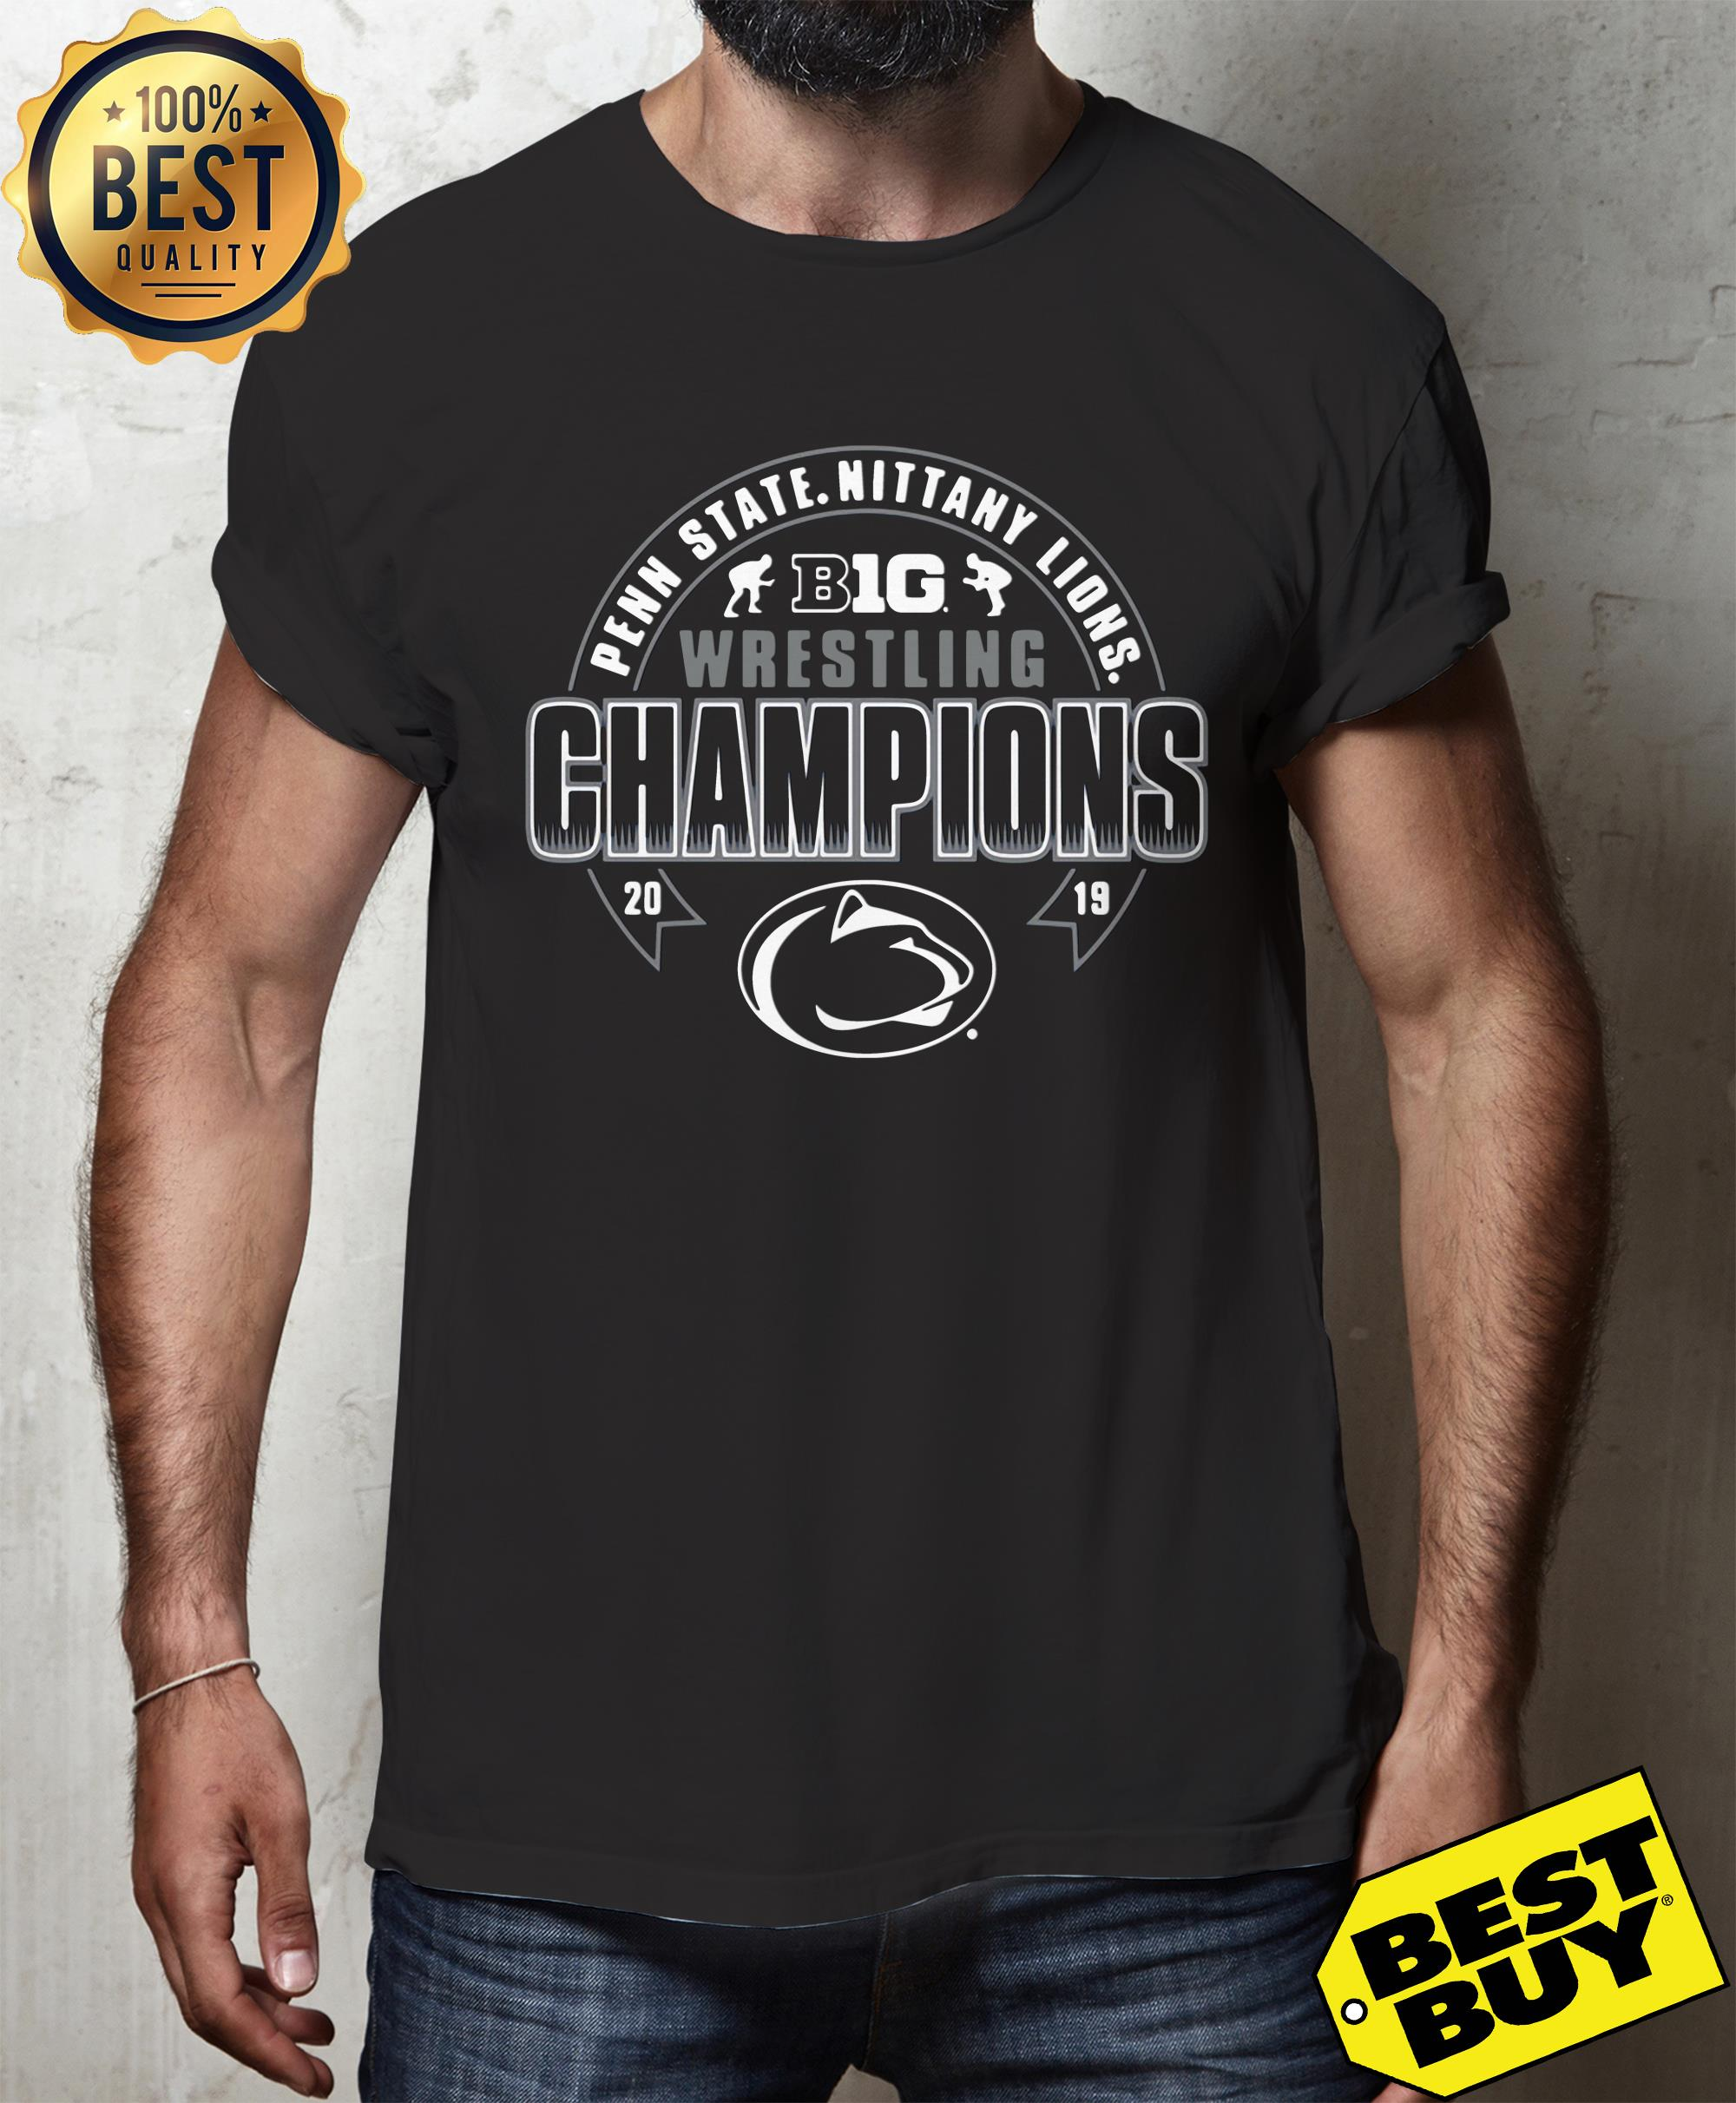 Penn State Youth 2019 Big Ten Wrestling Champions tank top